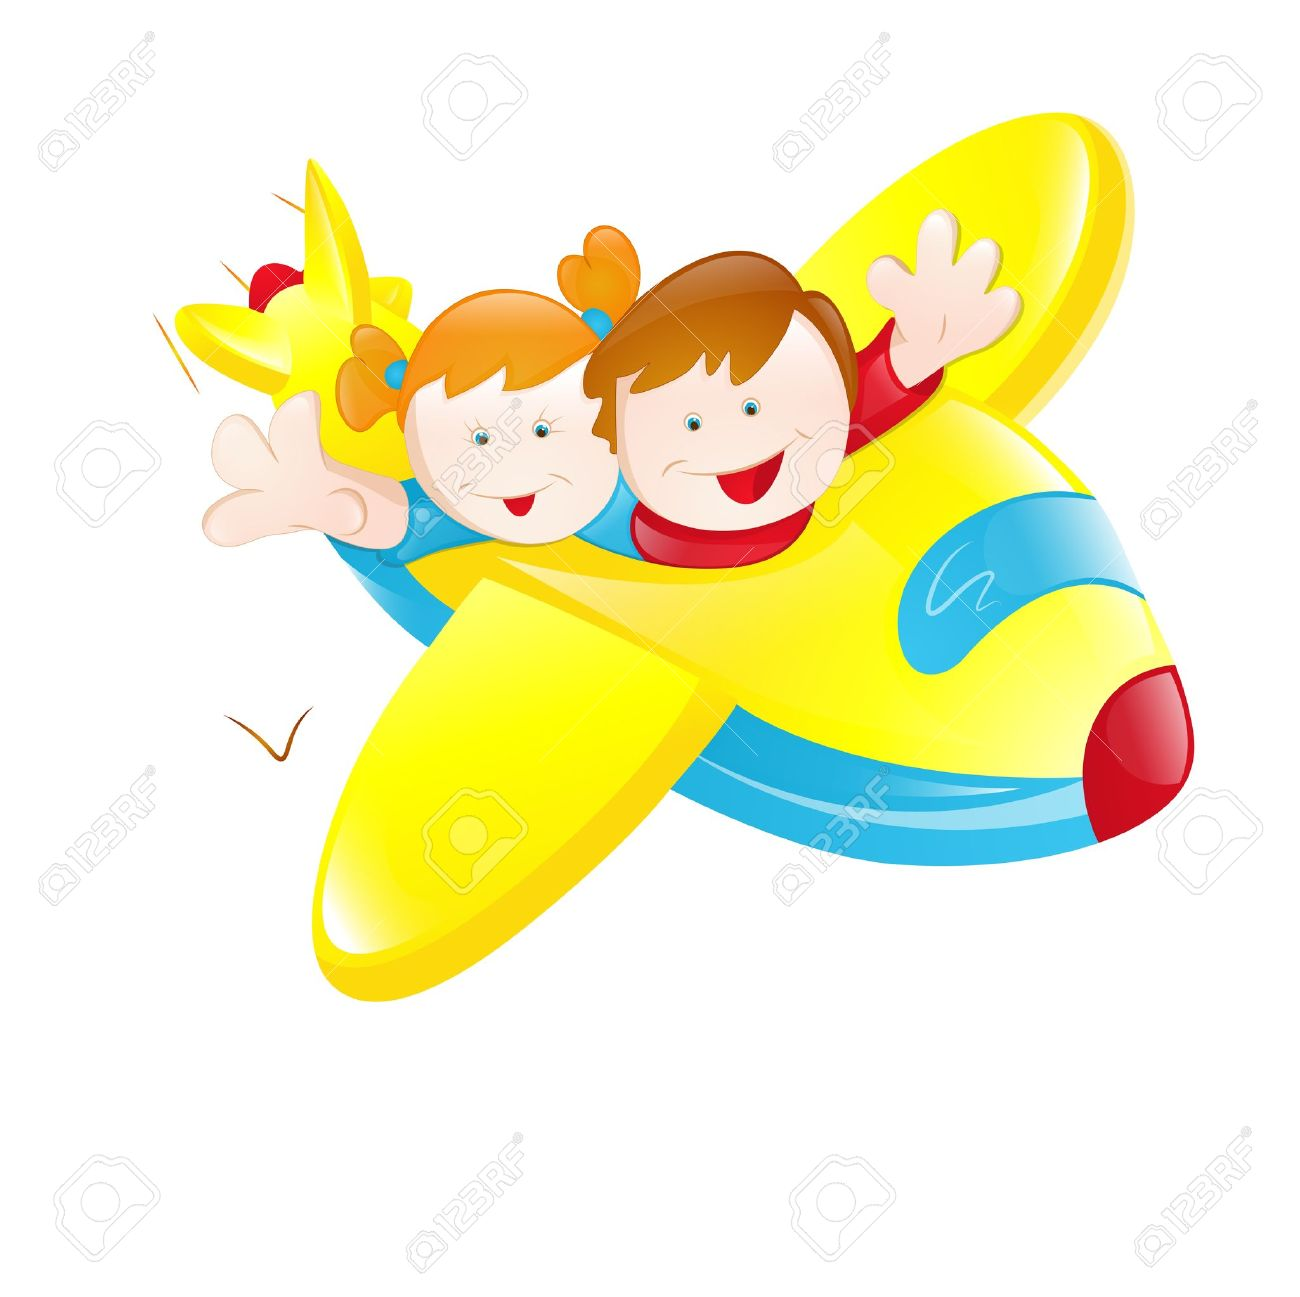 Kids Flying Plane Royalty Free Cliparts, Vectors, And Stock.